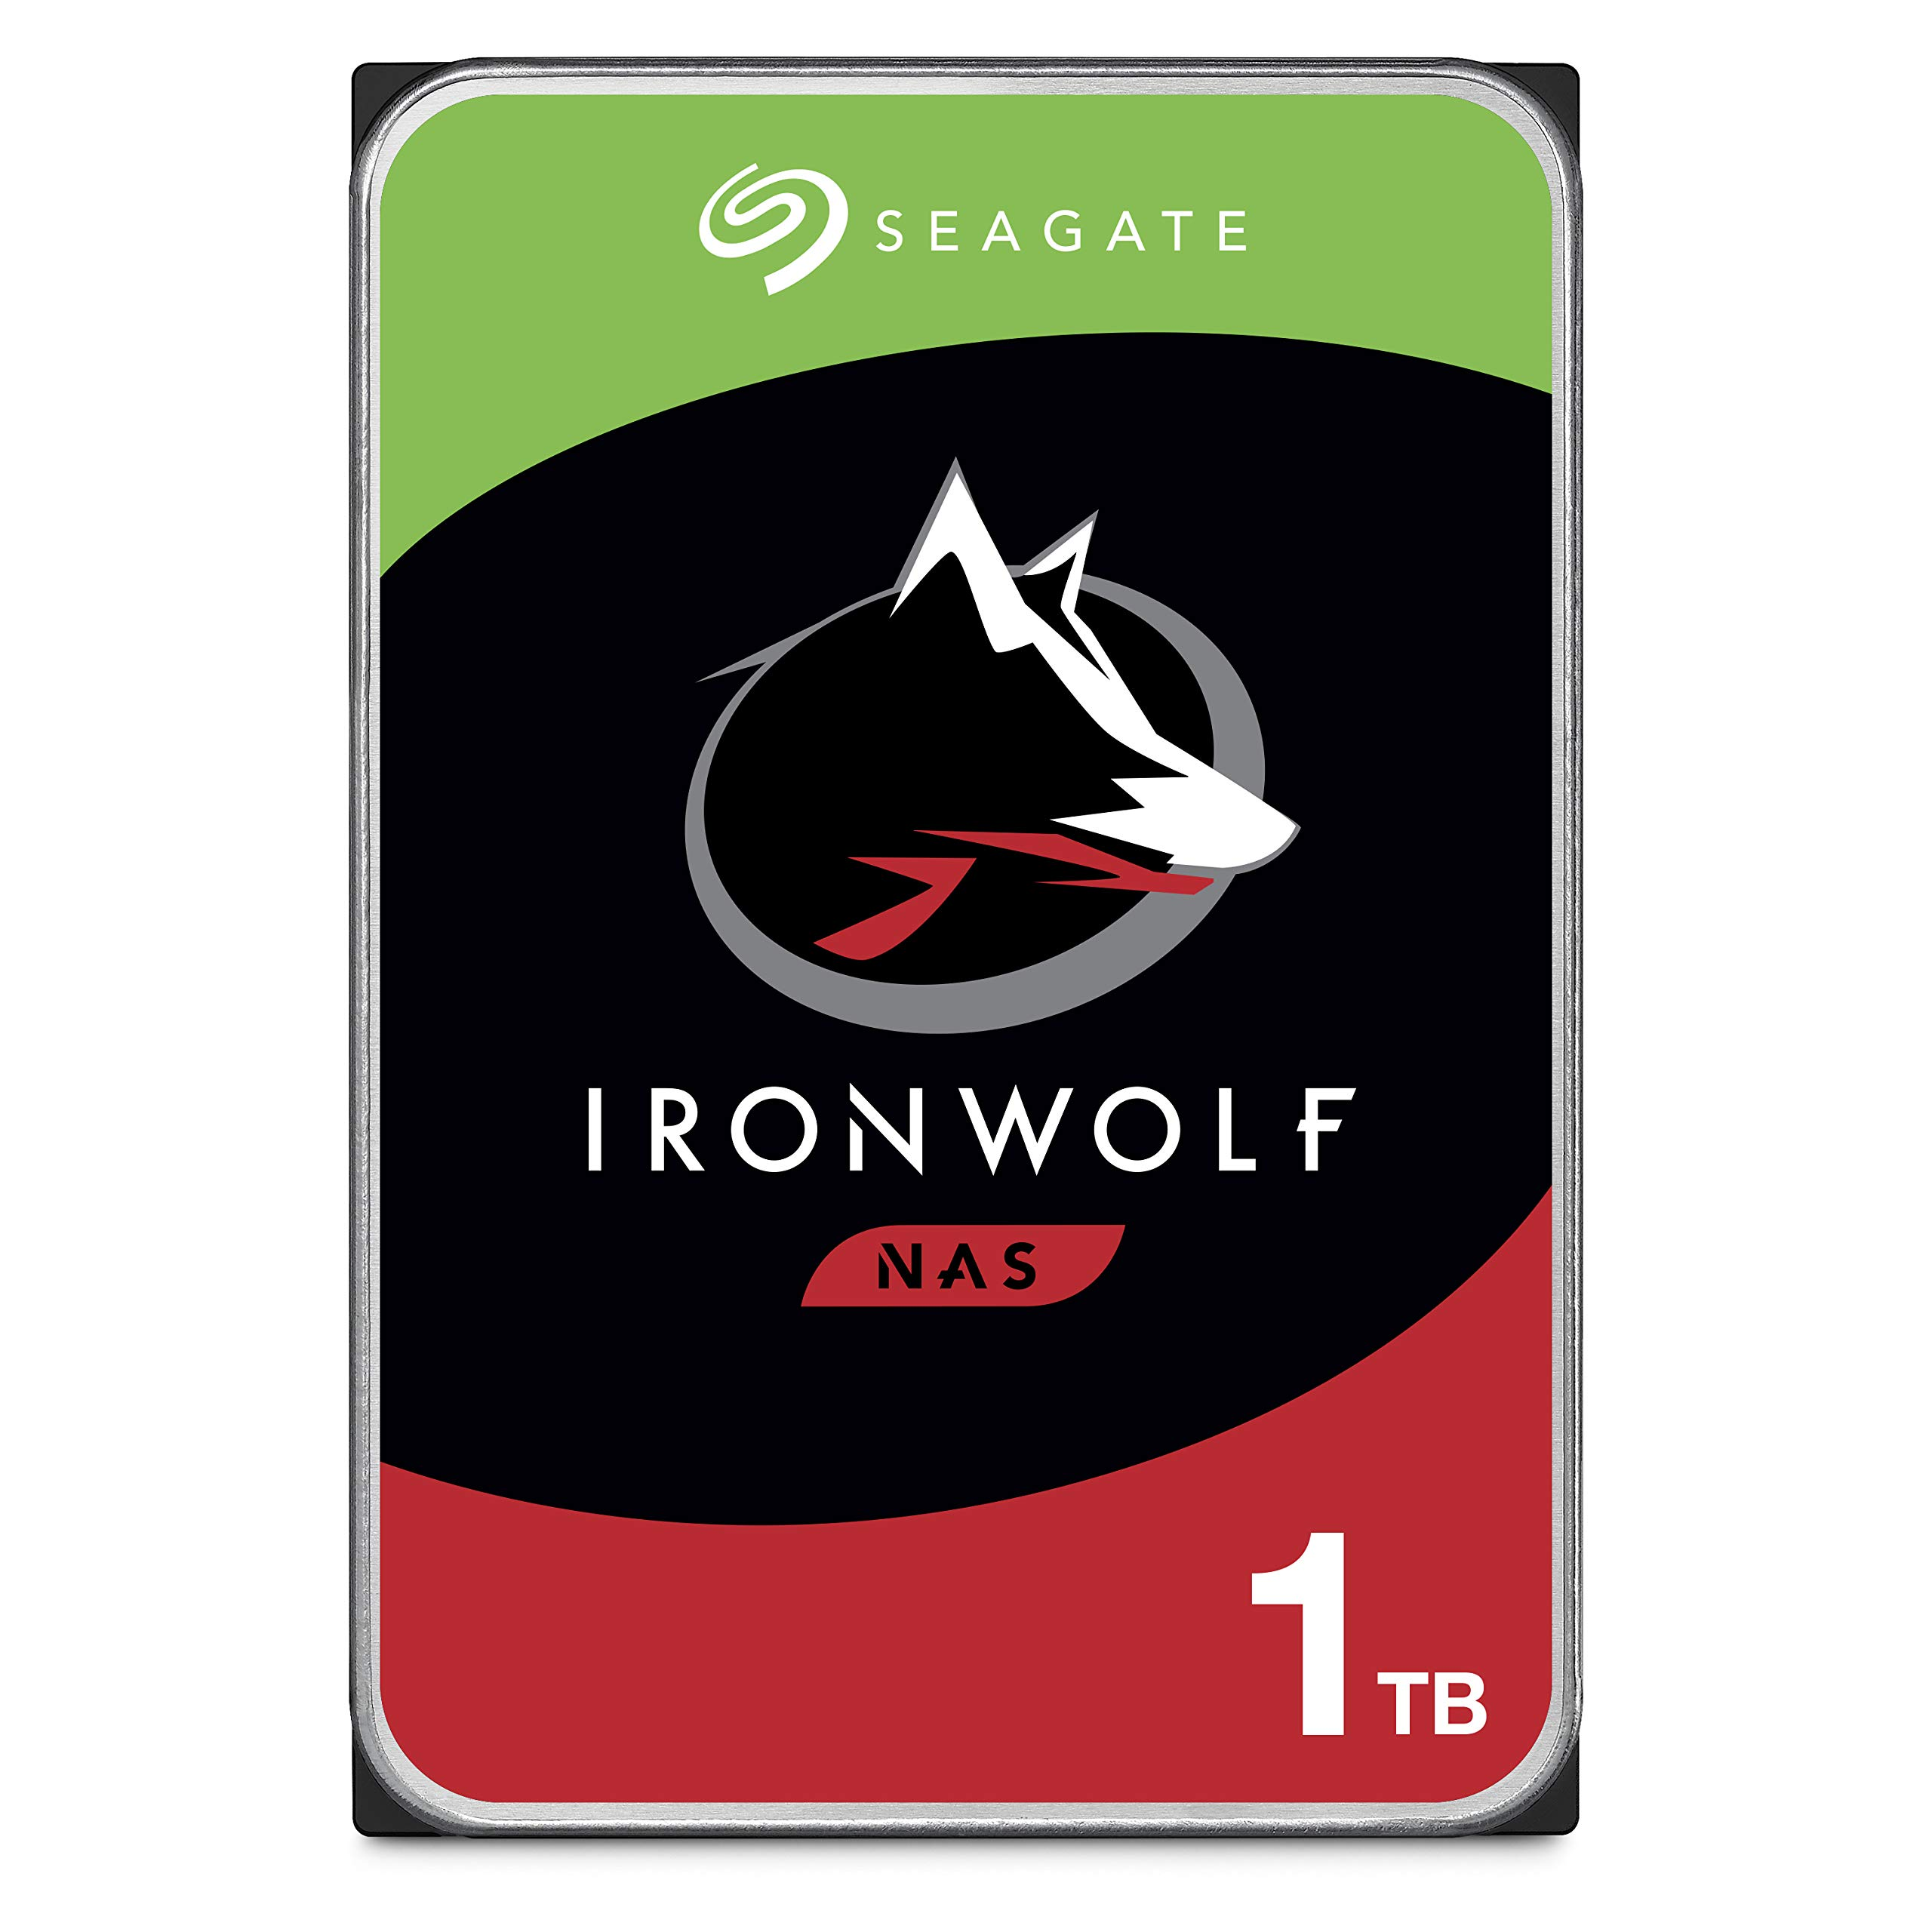 HDD 1TB SATA Seagate IronWolf 1TB NAS 3.5in 6Gb/s 5900 RPM 6